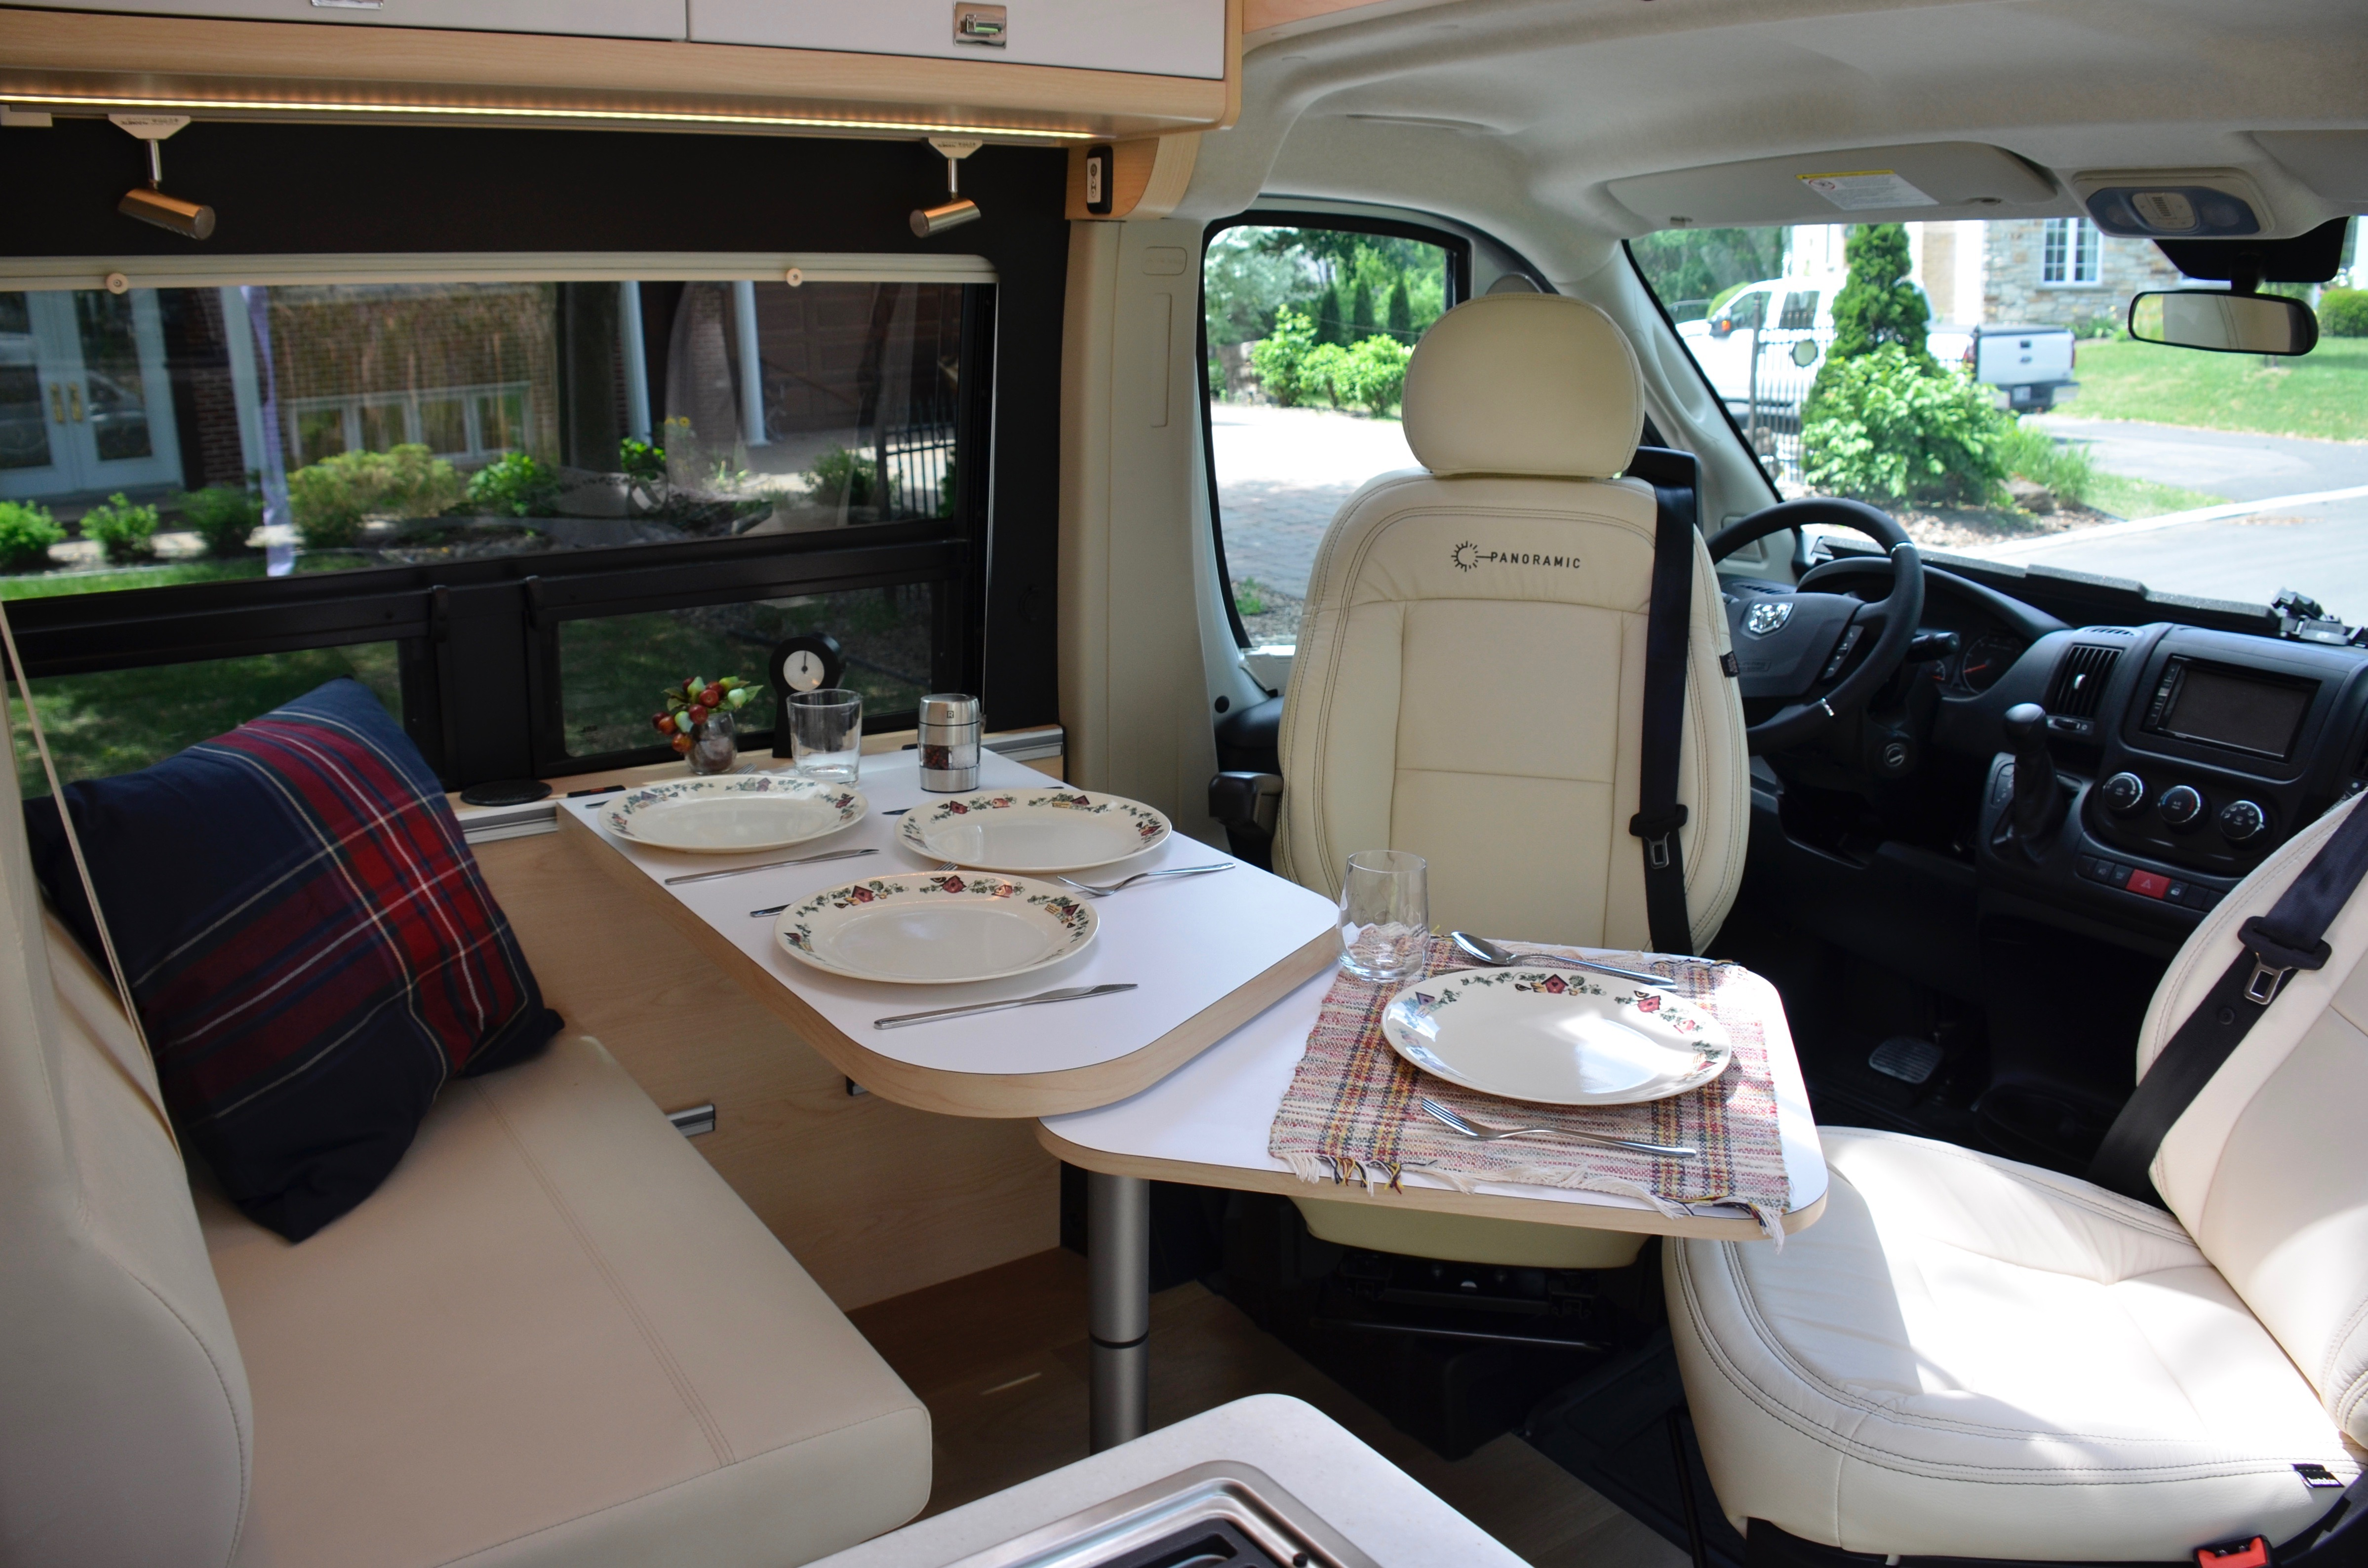 Panoramic RV - Table extension